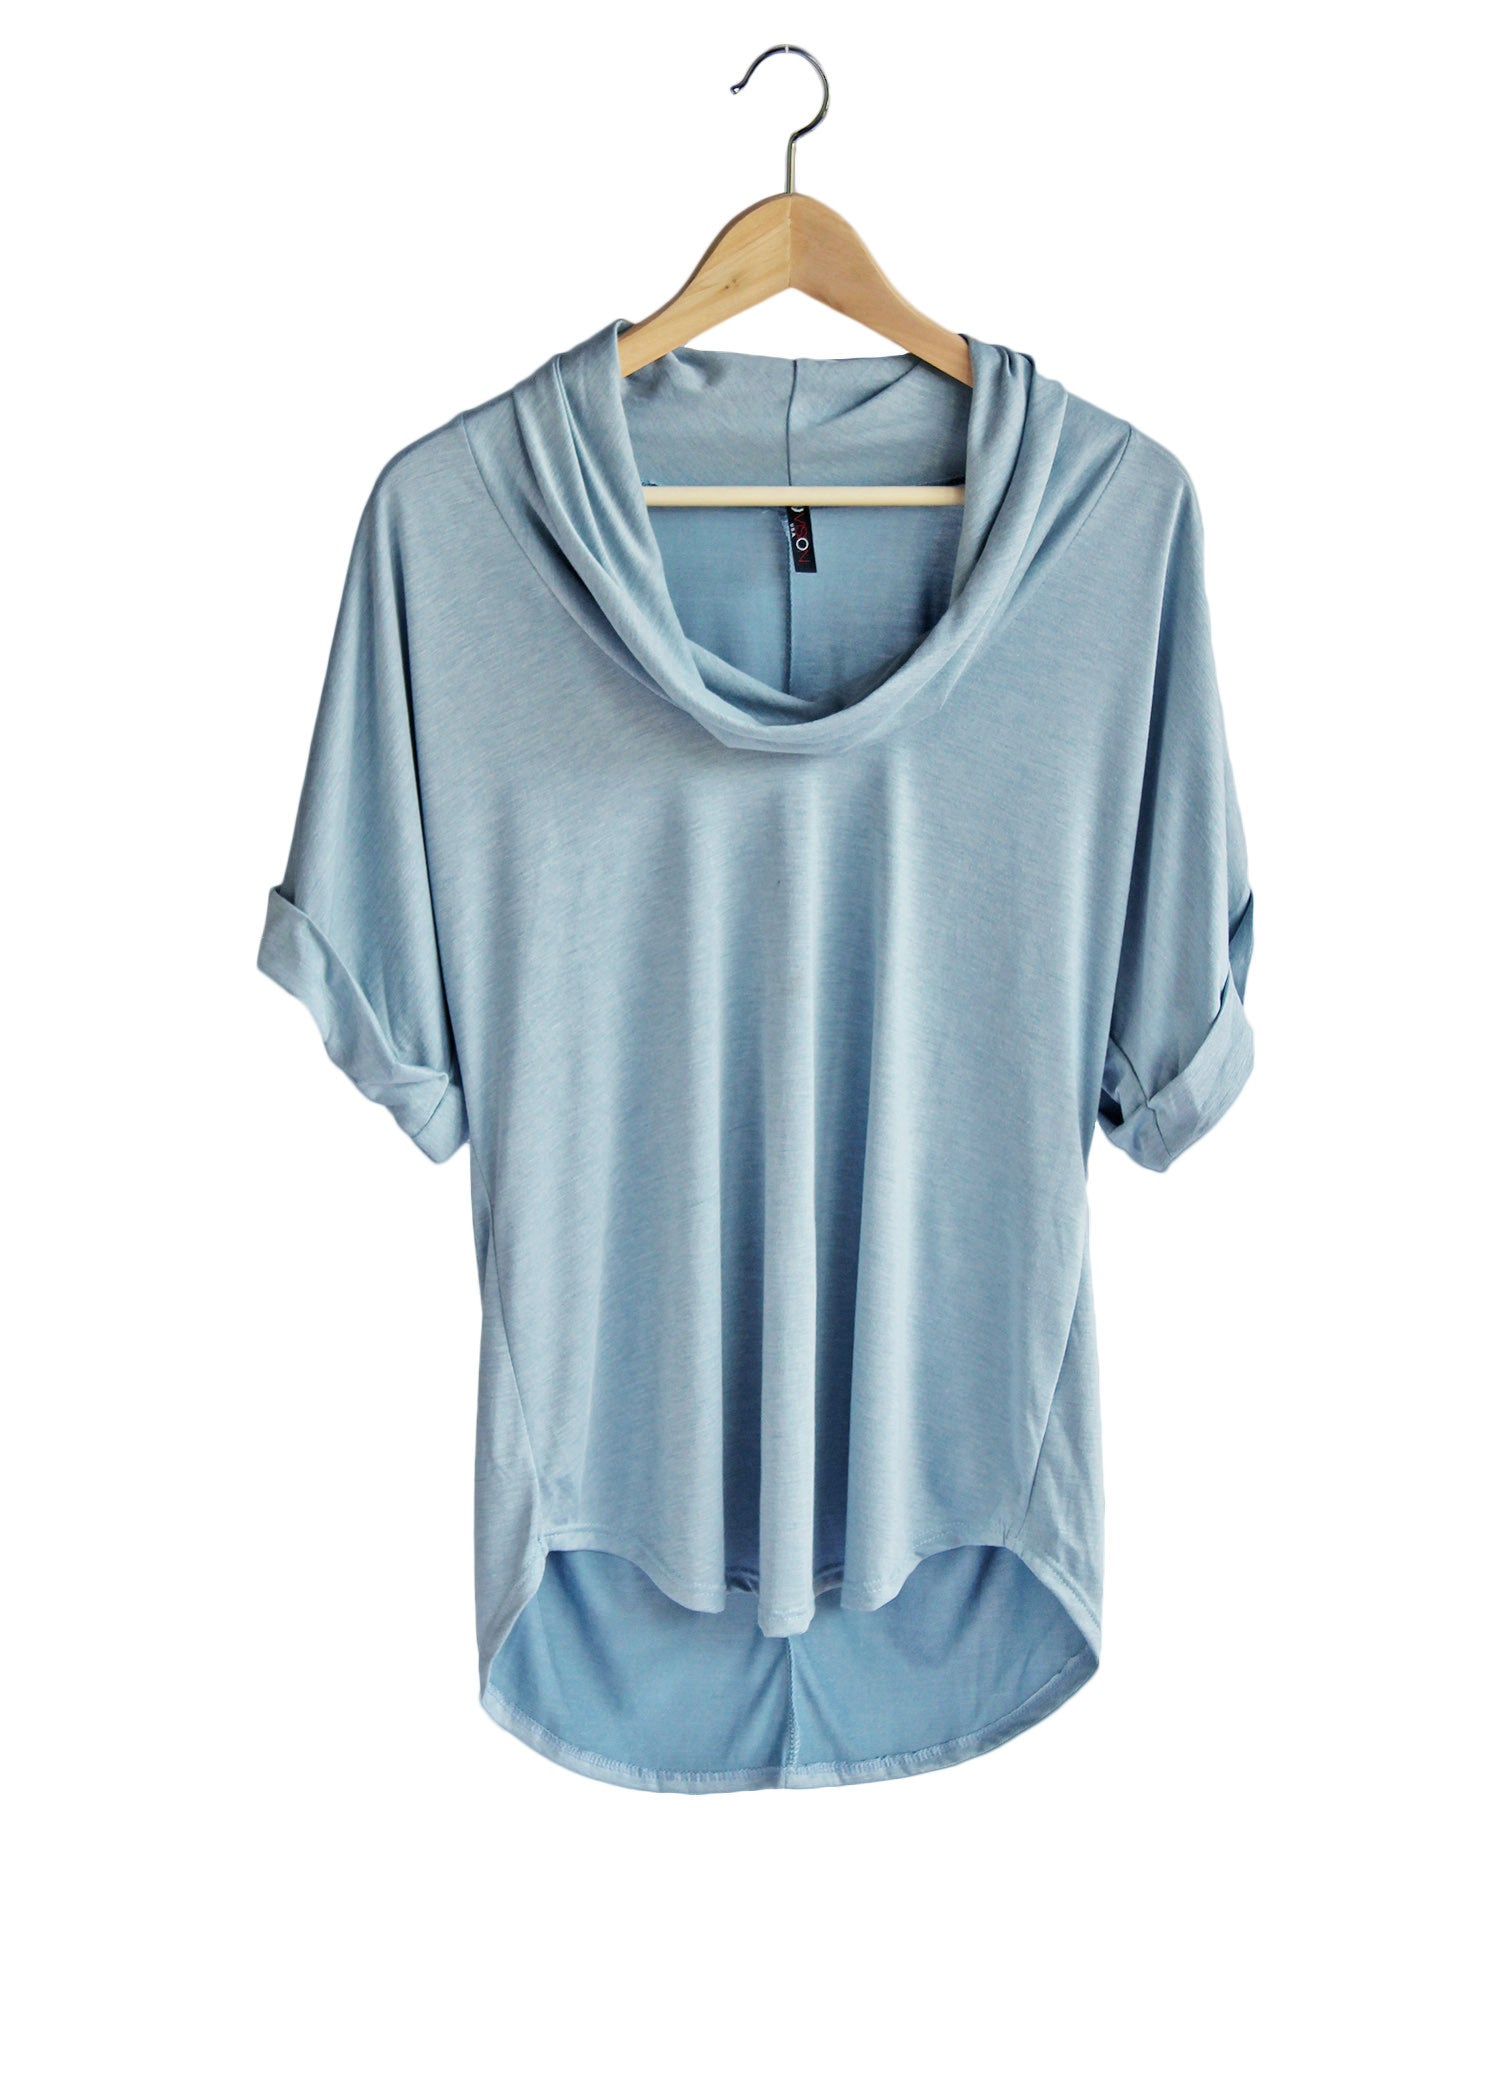 Sky Blue Cowl Neck Tee | Made in America | Ethical Fashion